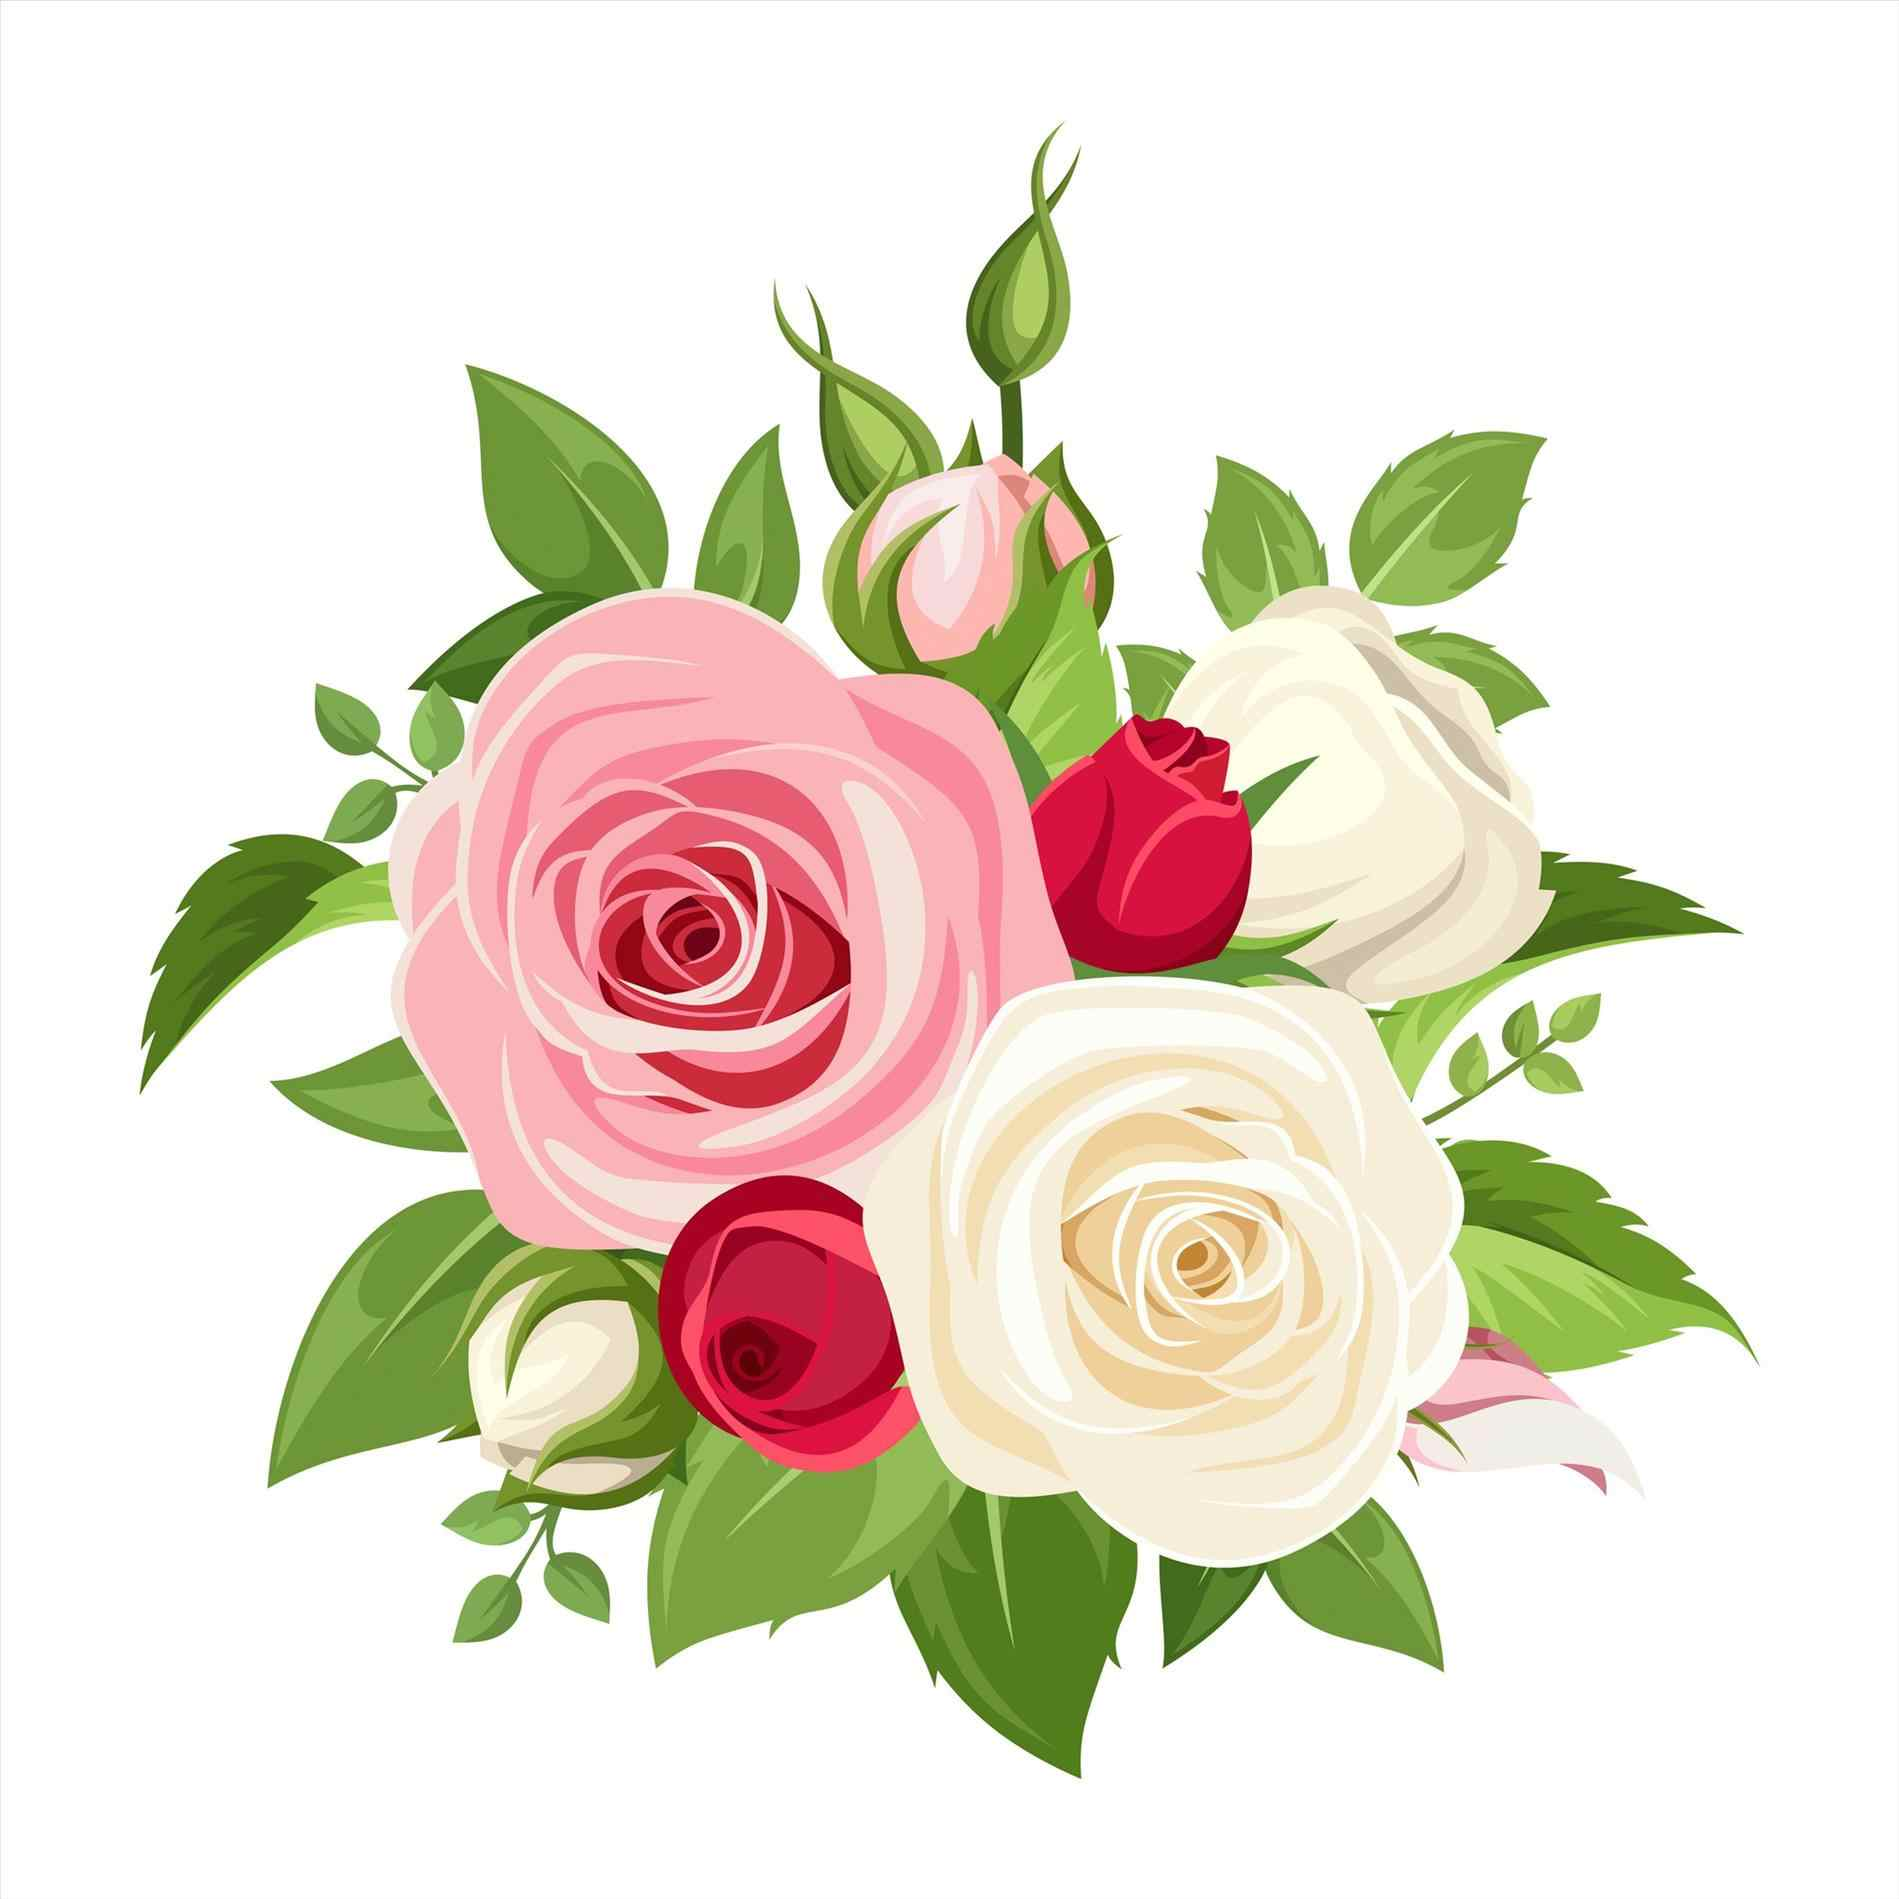 1899x1899 Png Rose Png Picture To My Momlizelsburyi Miss U Vary Flower